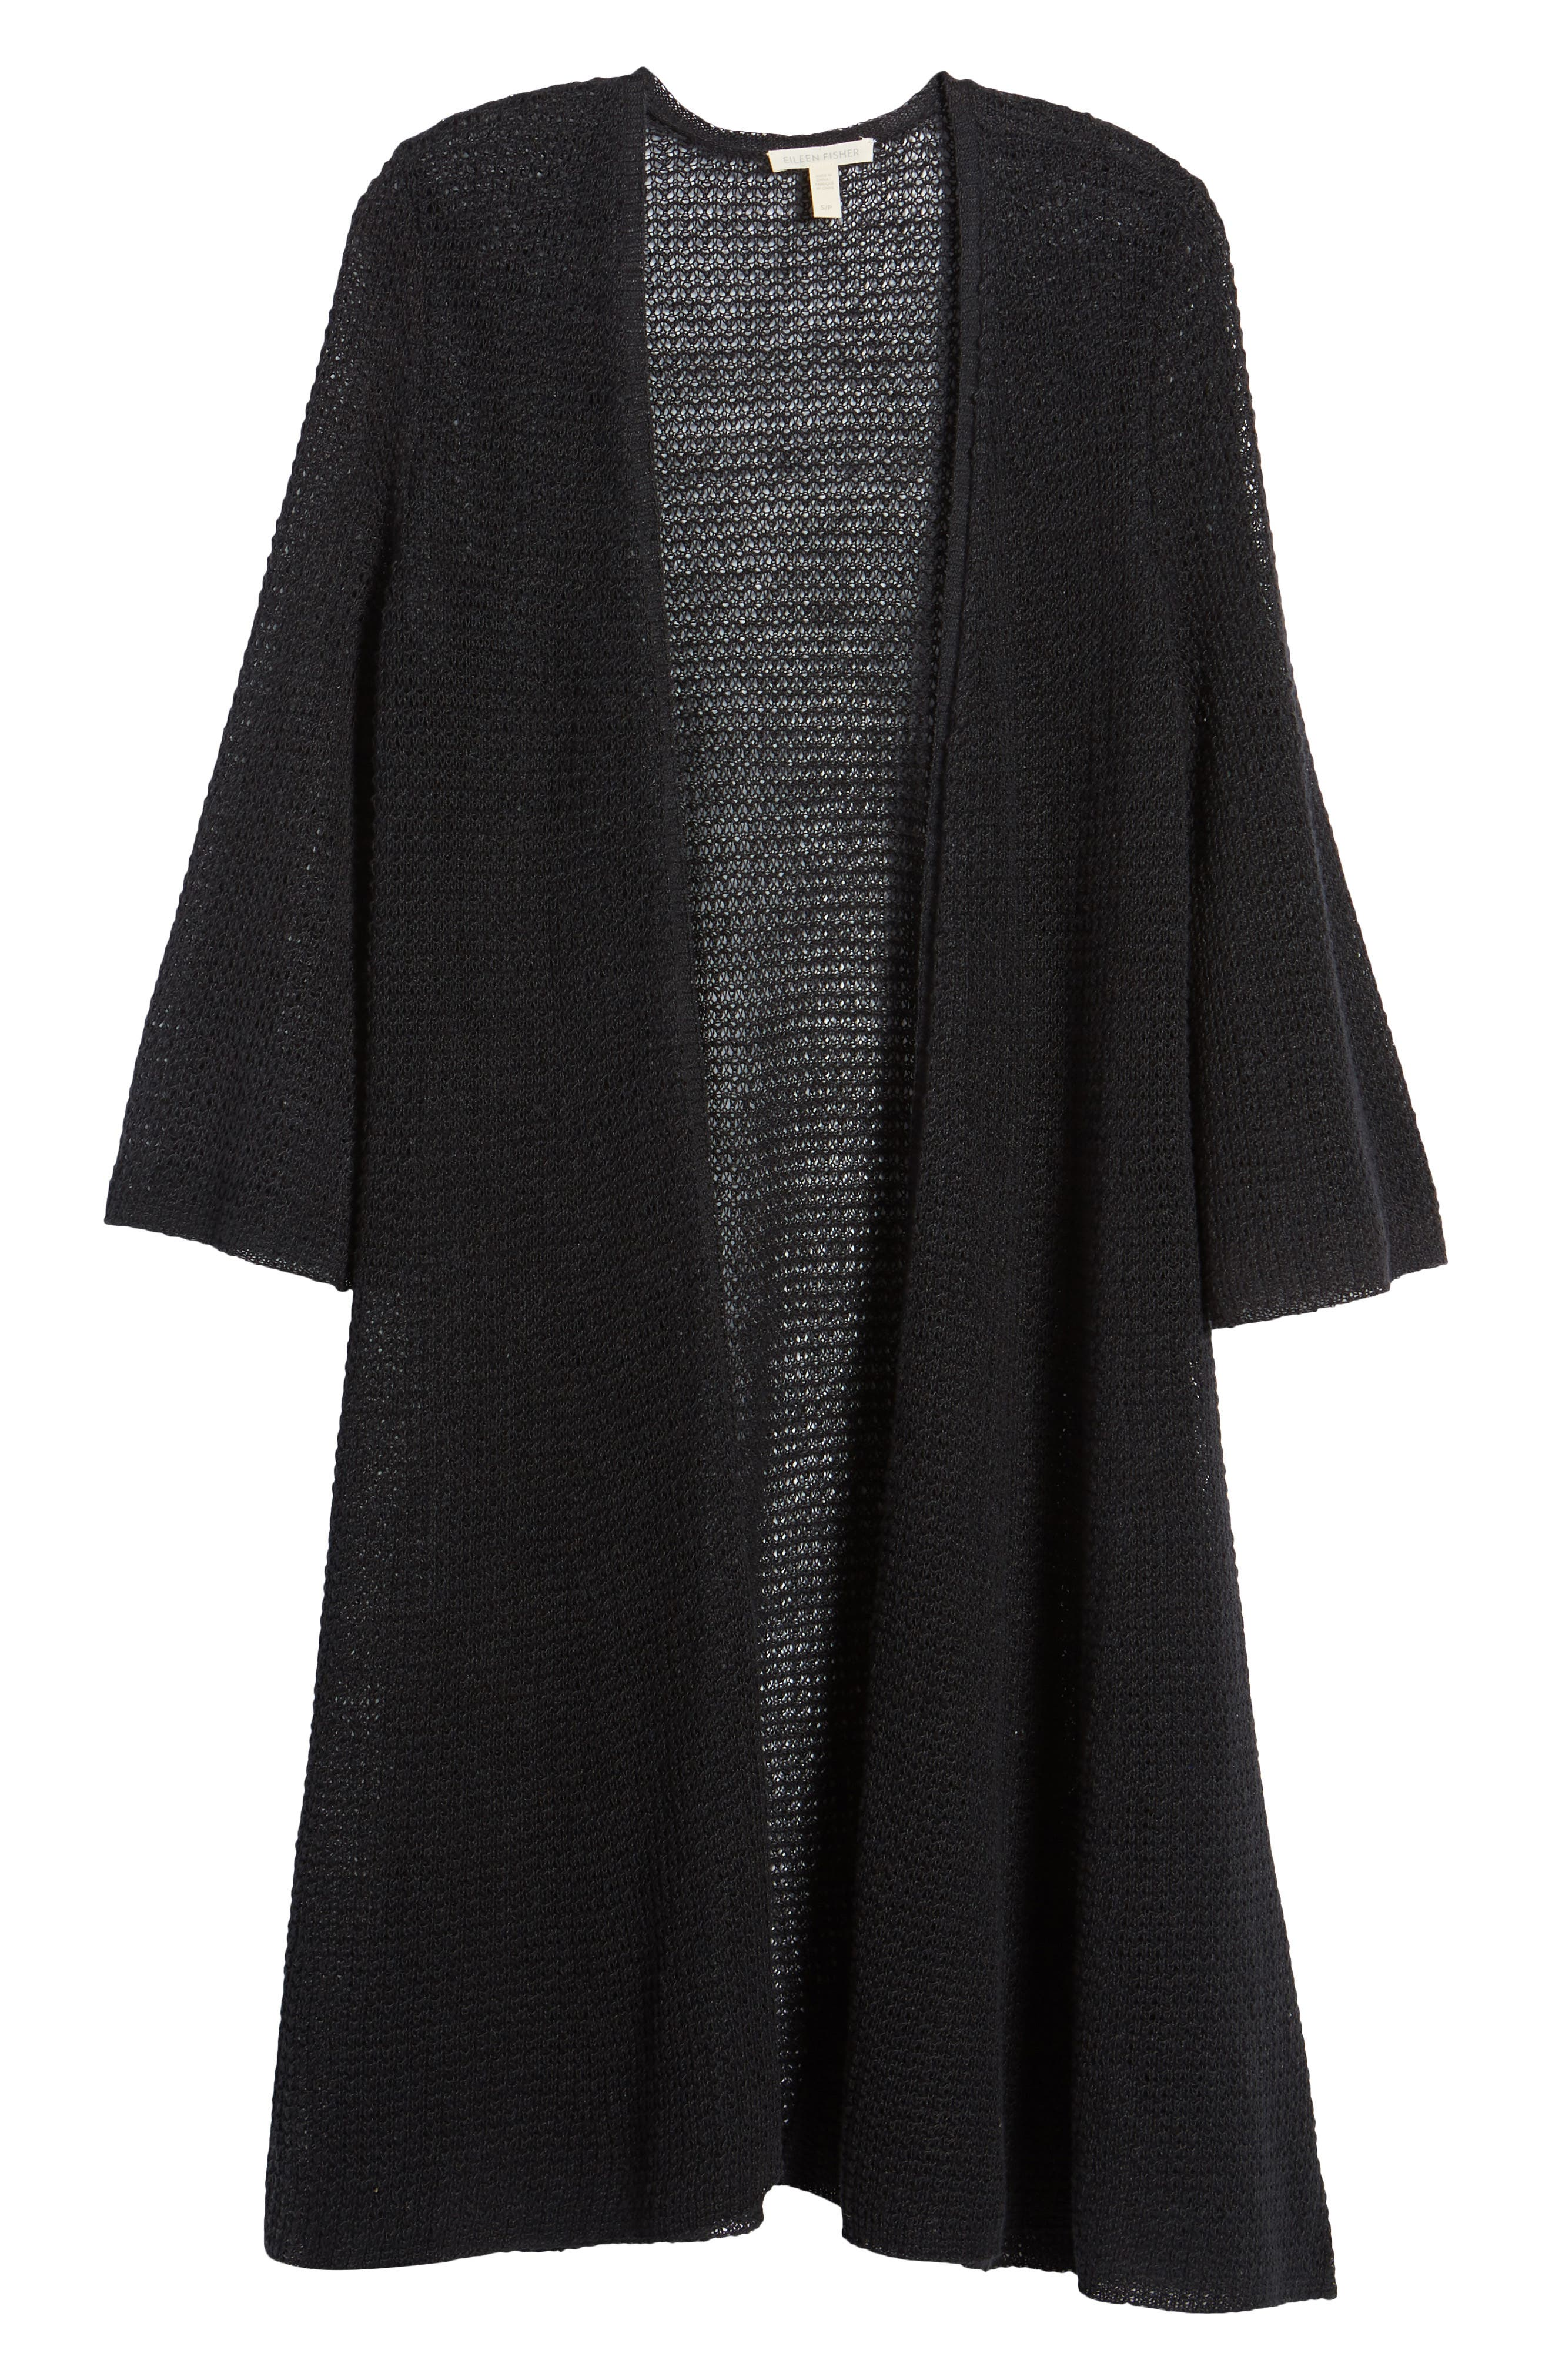 Long Organic Linen Cardigan,                             Alternate thumbnail 7, color,                             Black